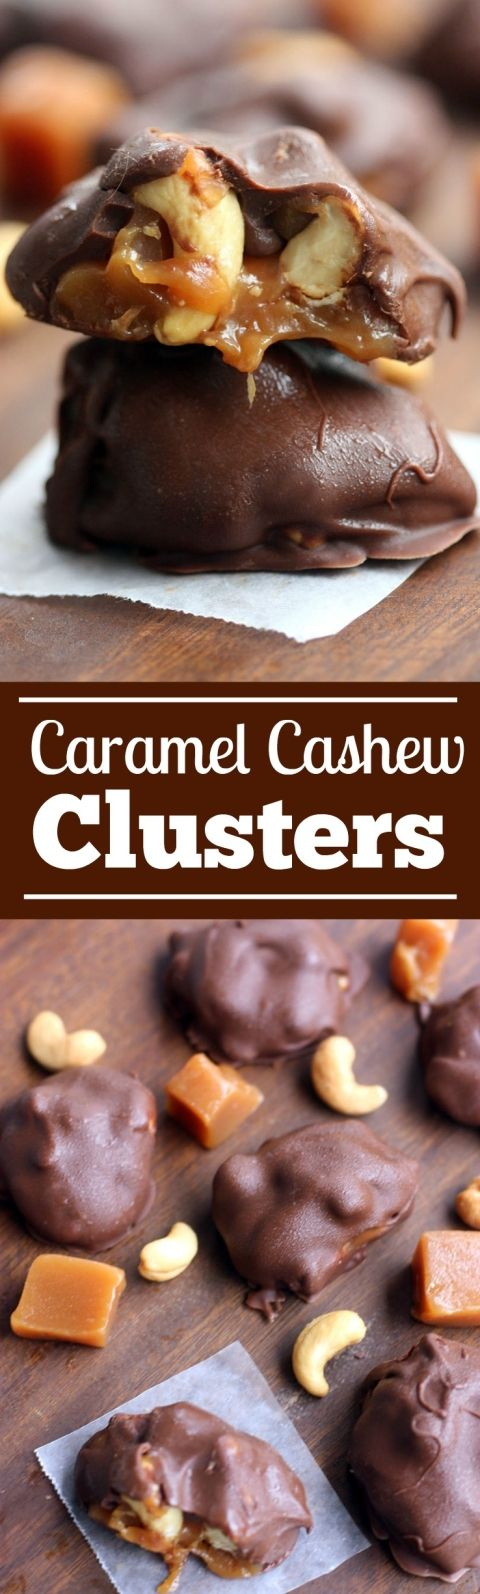 Caramel Cashew Clusters are the perfect easy